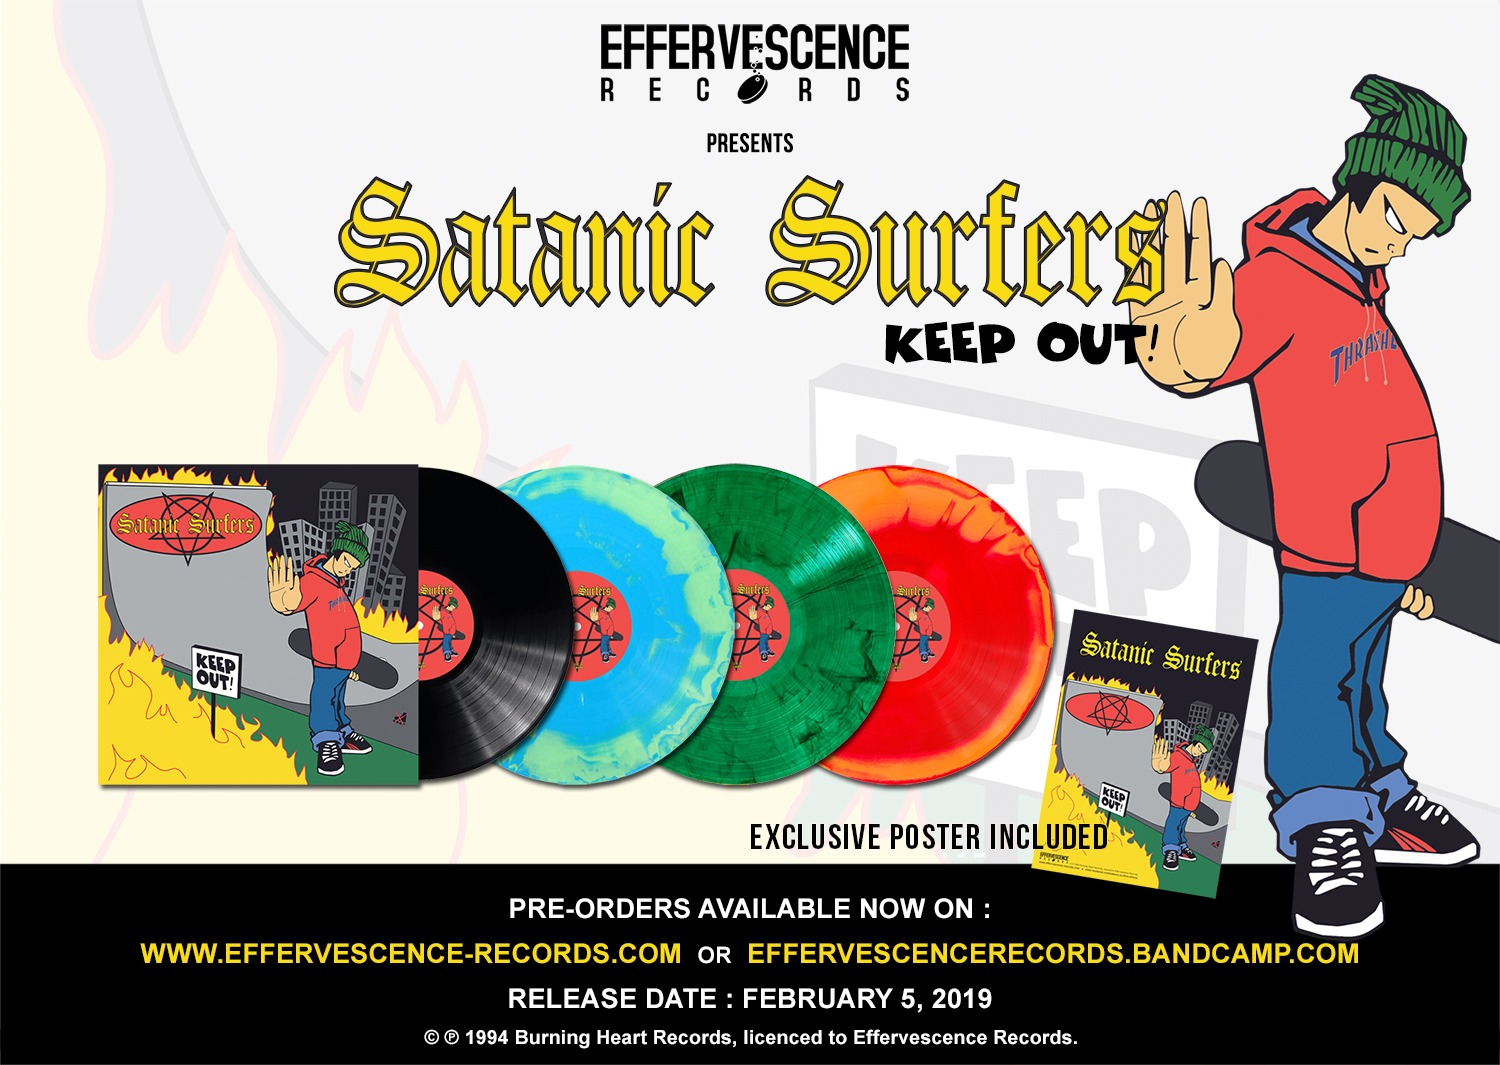 Effervescence Records - Preorders